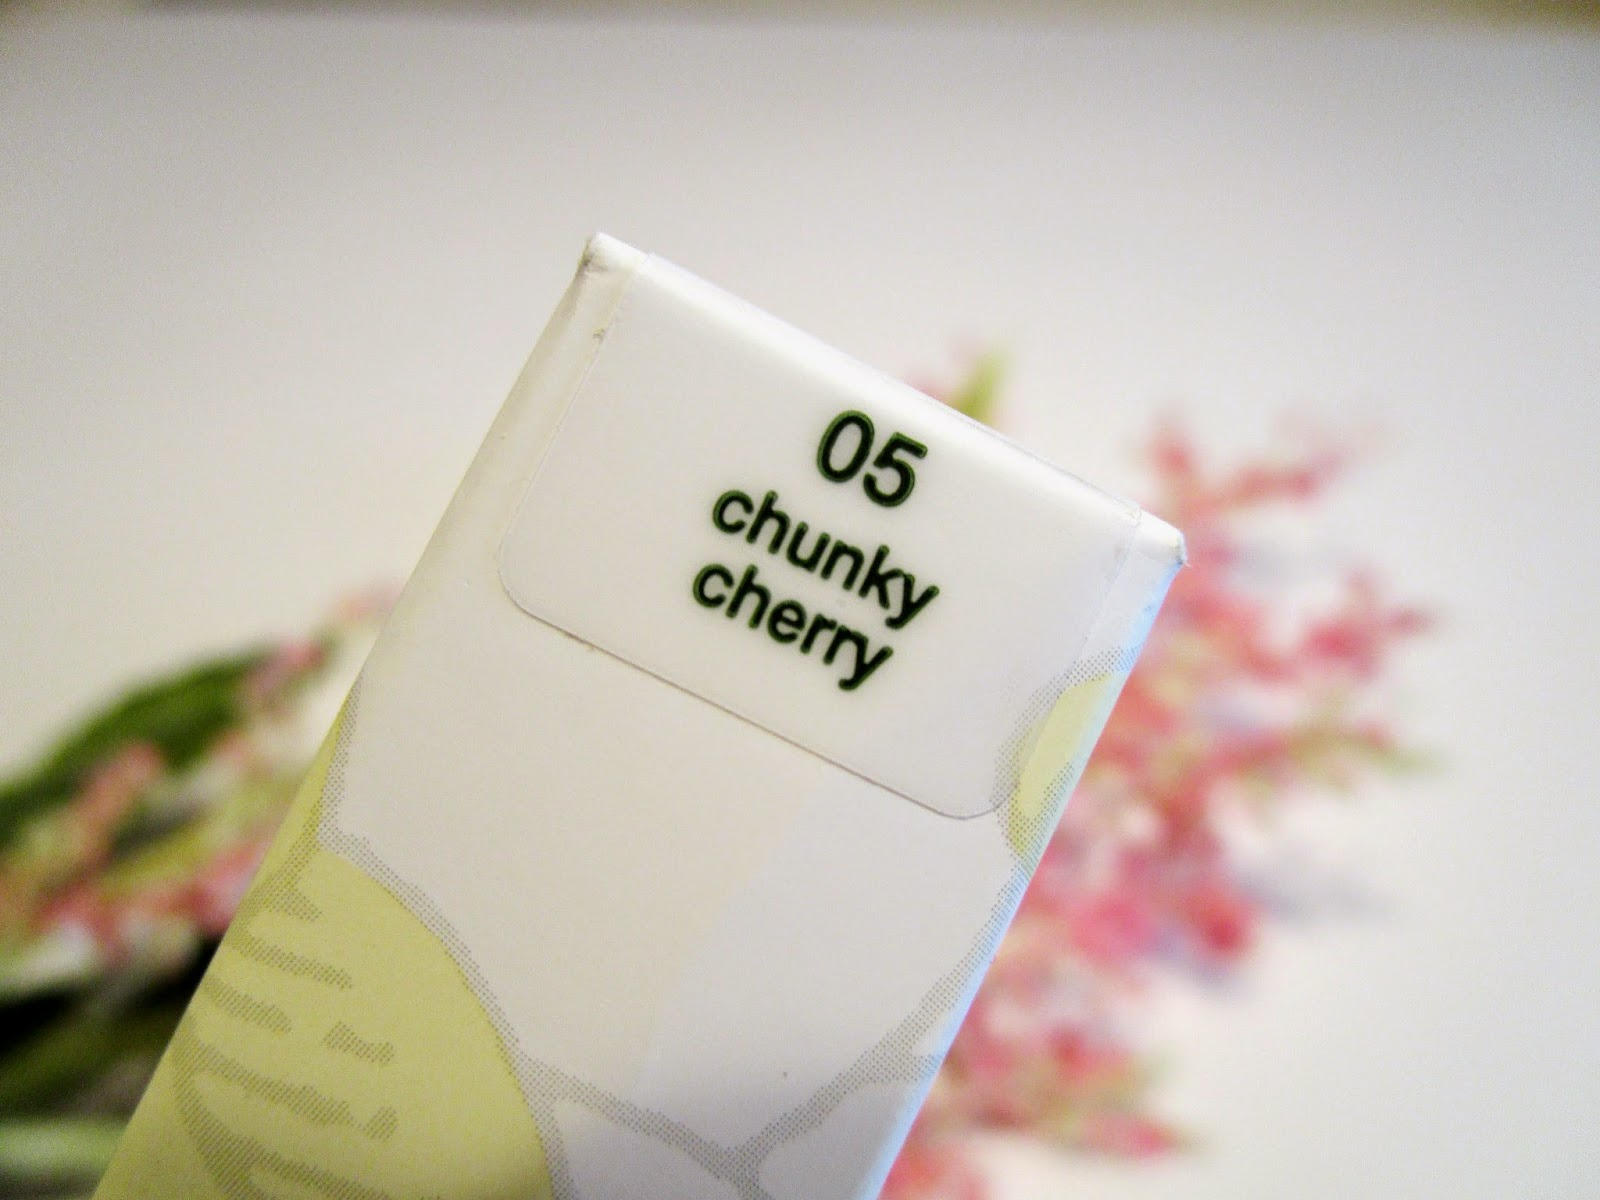 Chubby Stick #4 Chunky Cherry Clinique Perfume´s Club